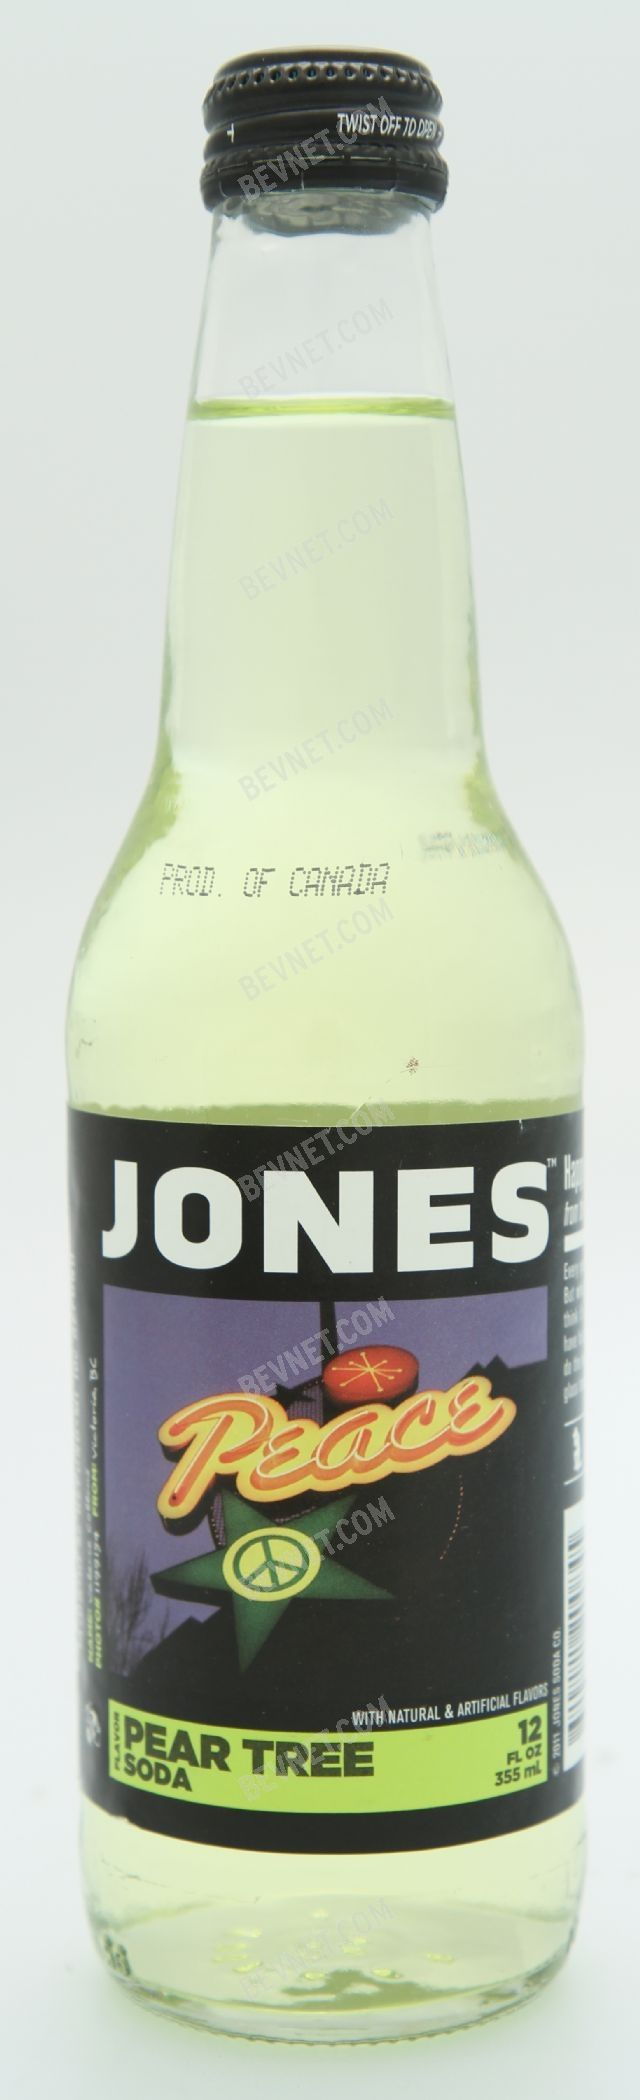 Jones Holiday Sodas: